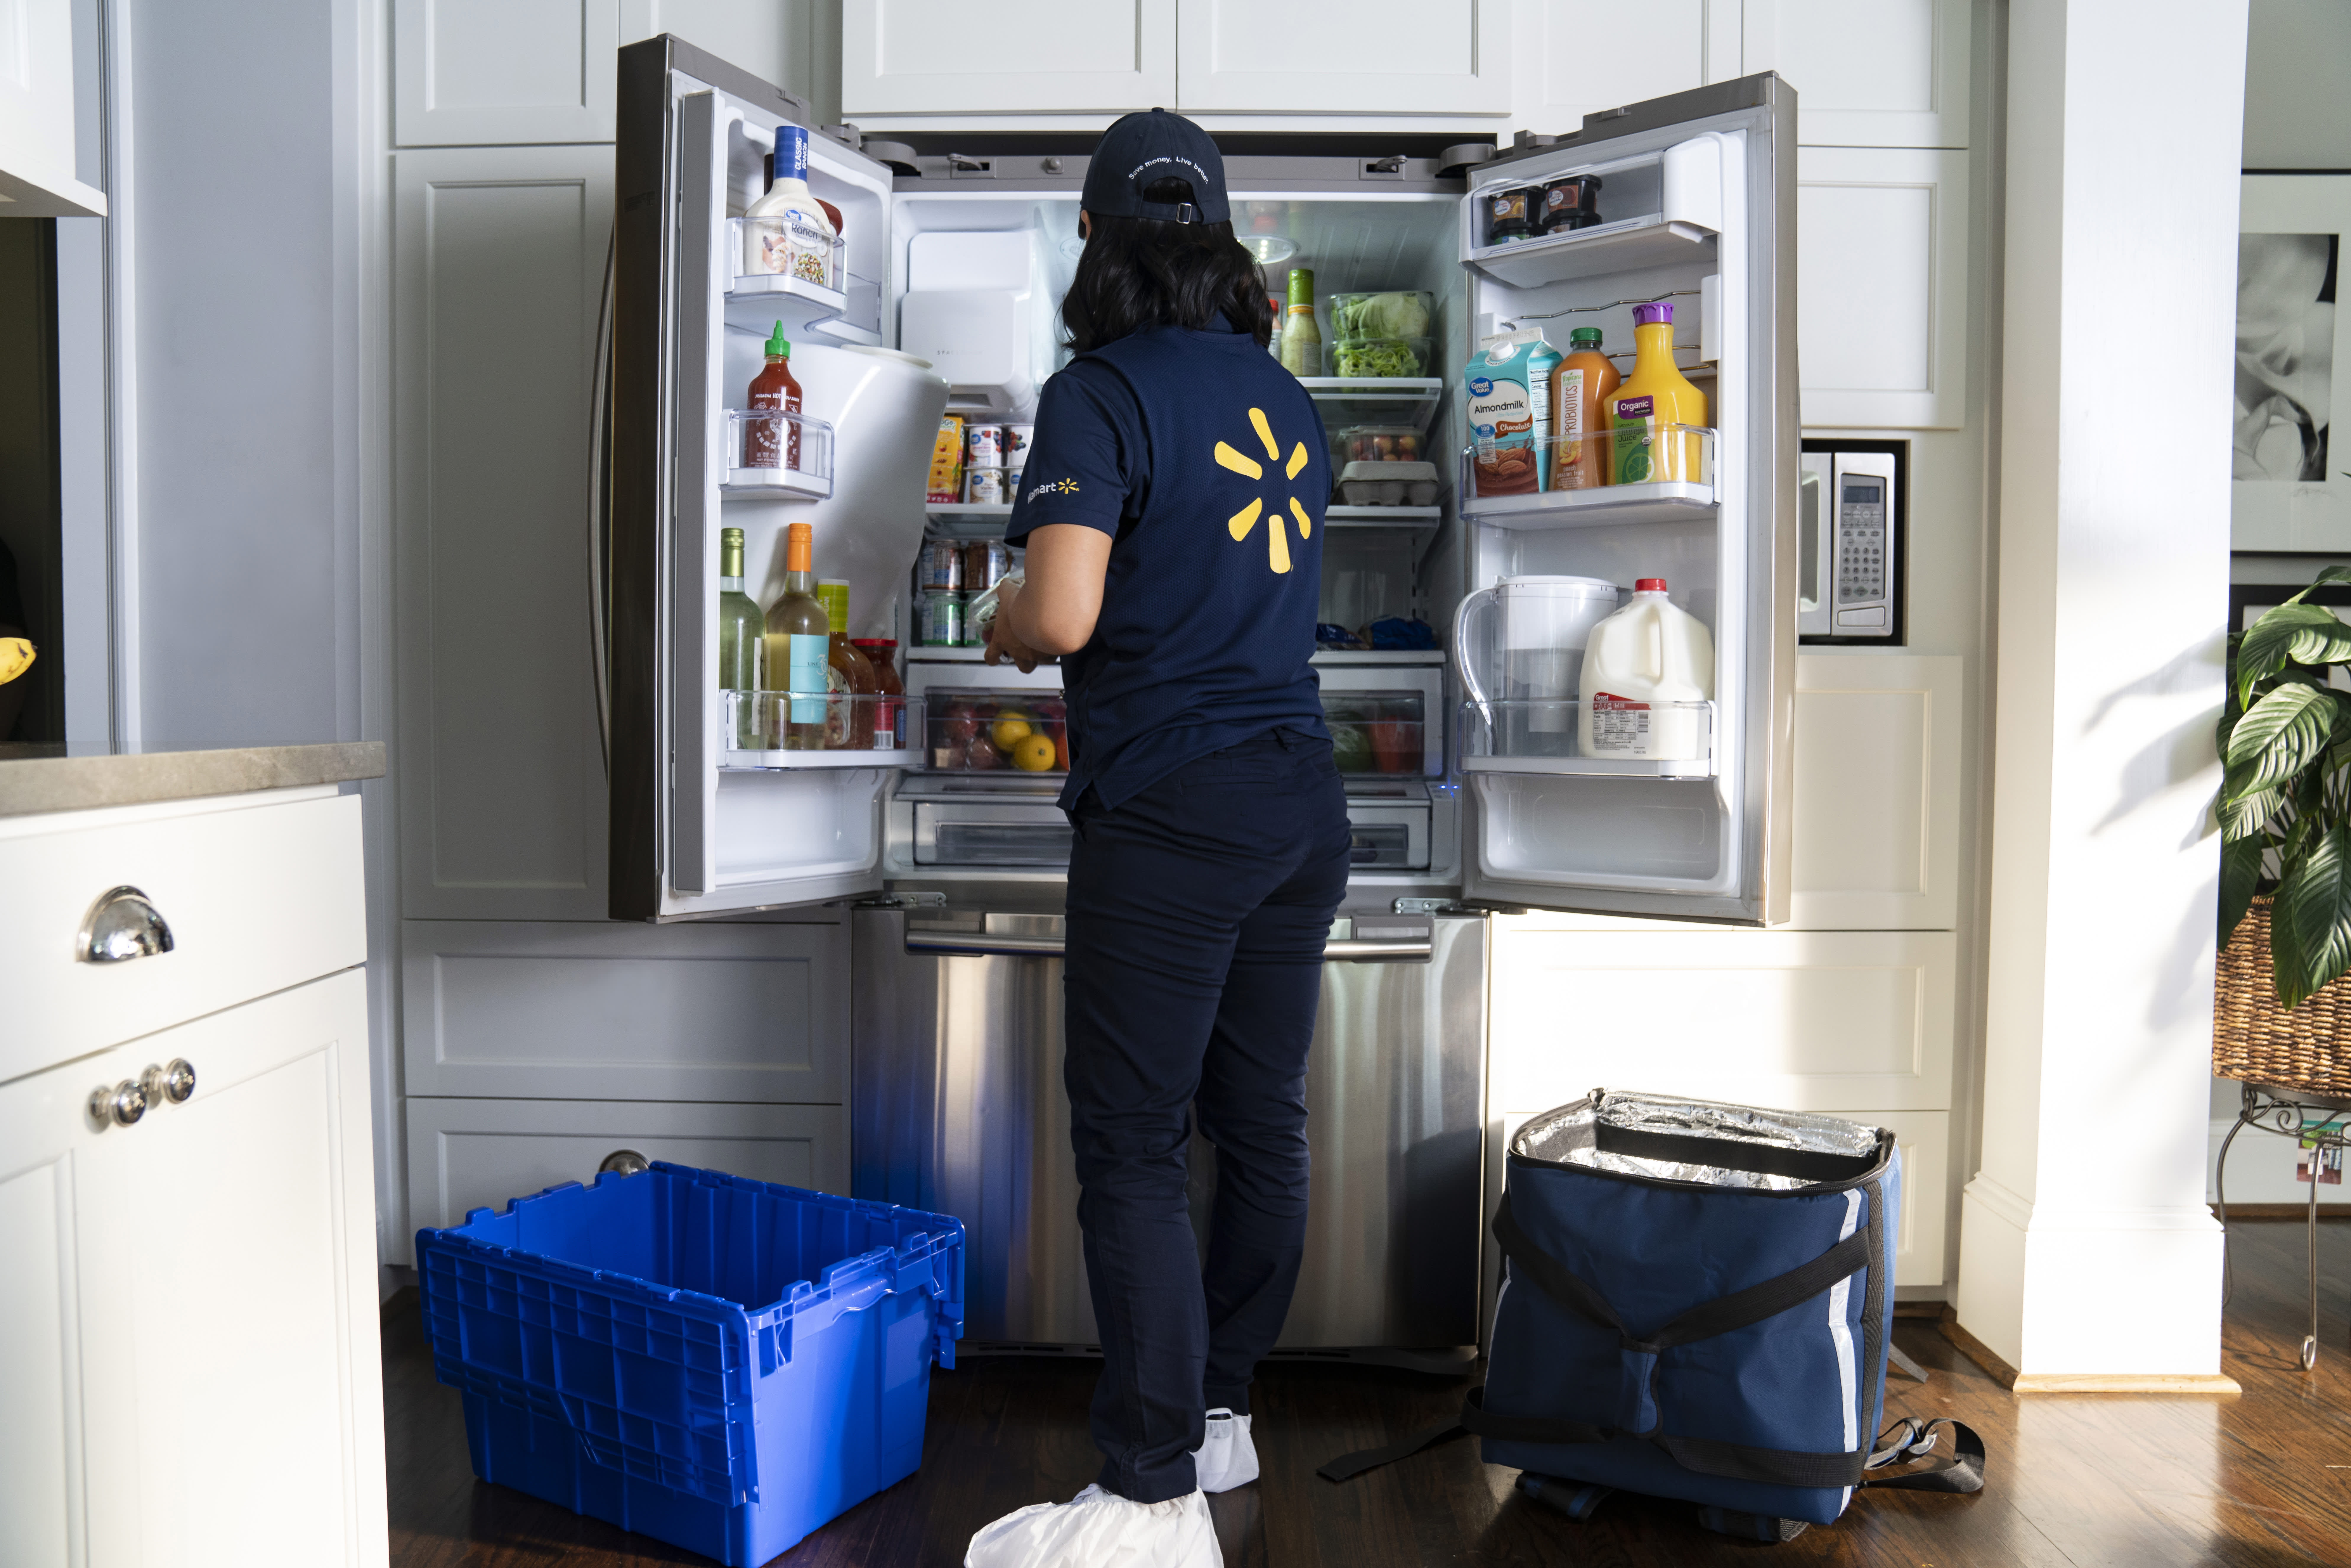 Walmart announces an in-home grocery delivery service